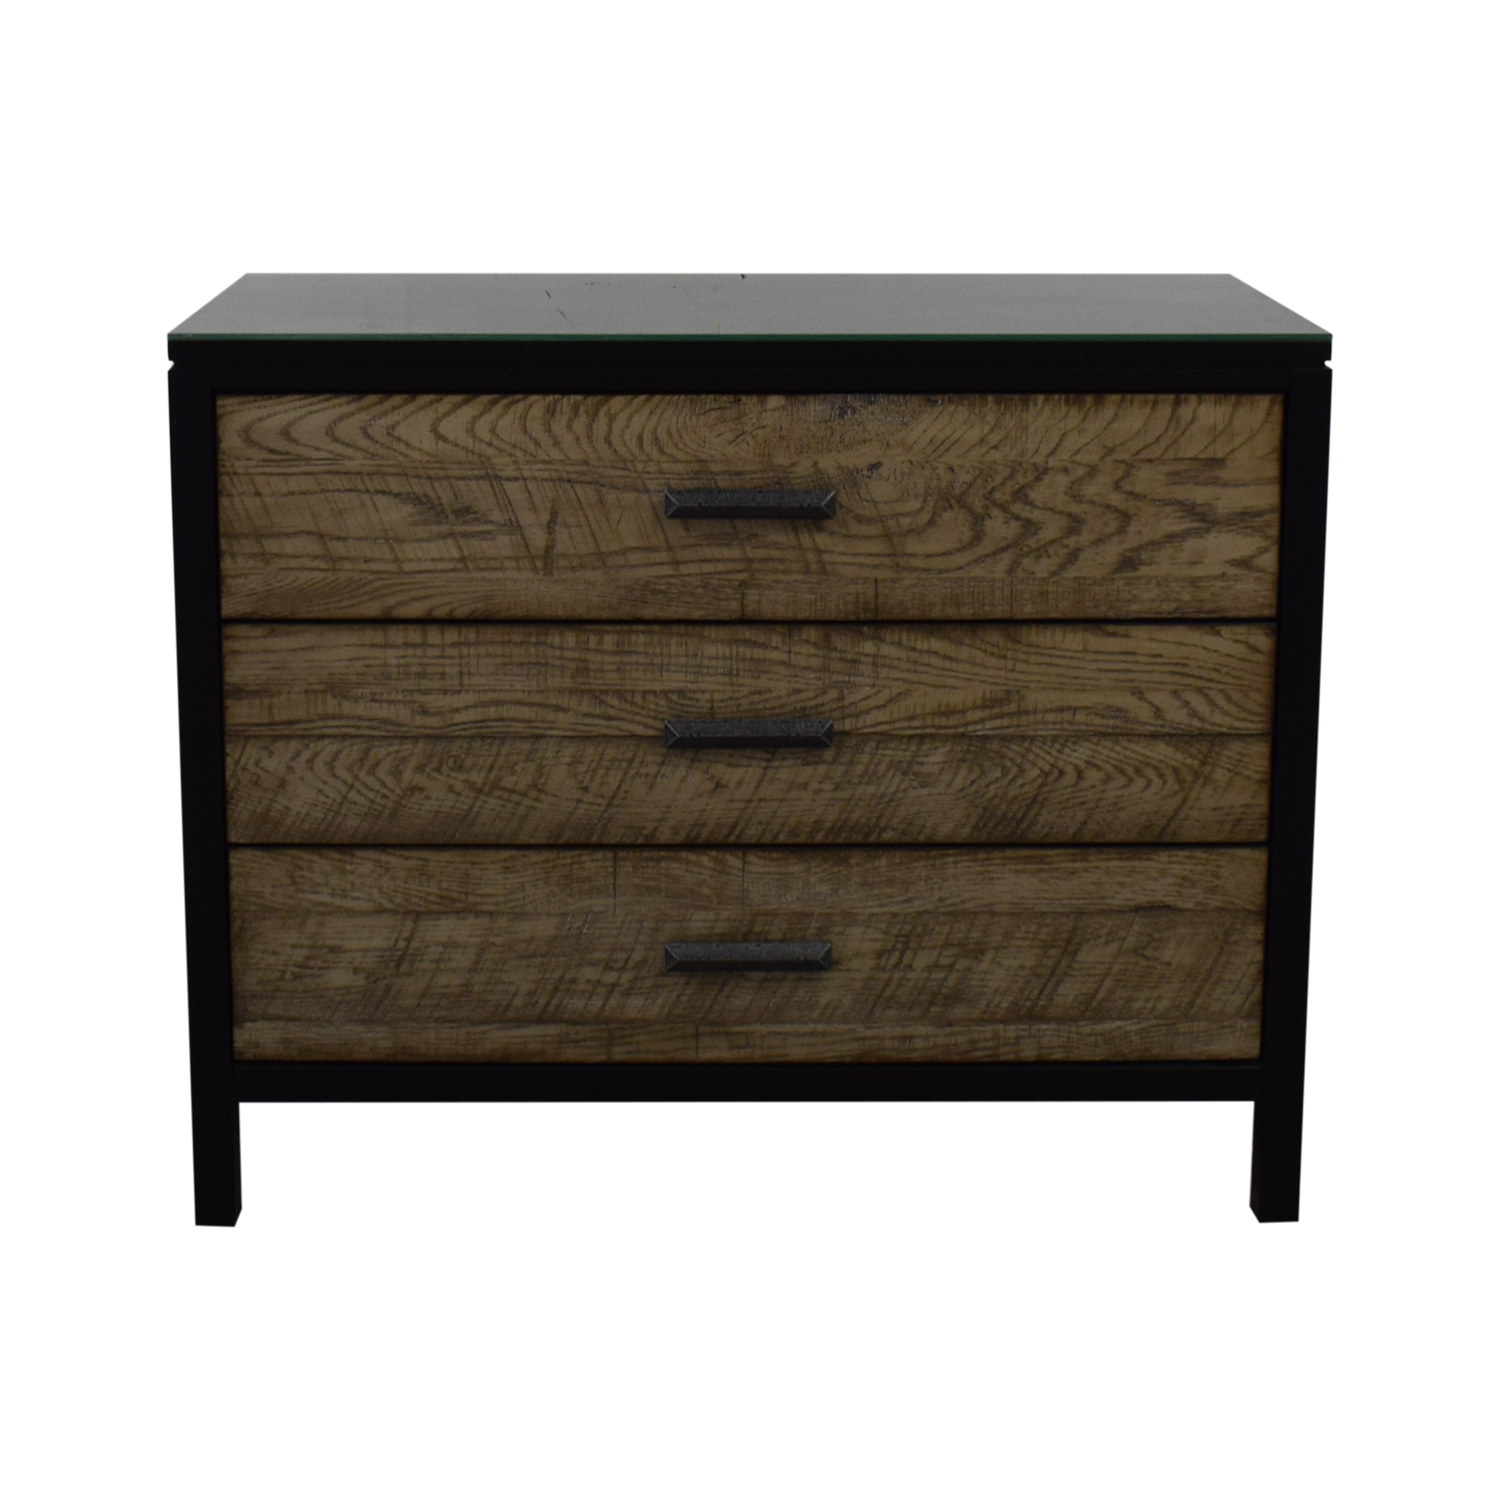 Ethan Allen Ethan Allen Three-Drawer Dresser on sale